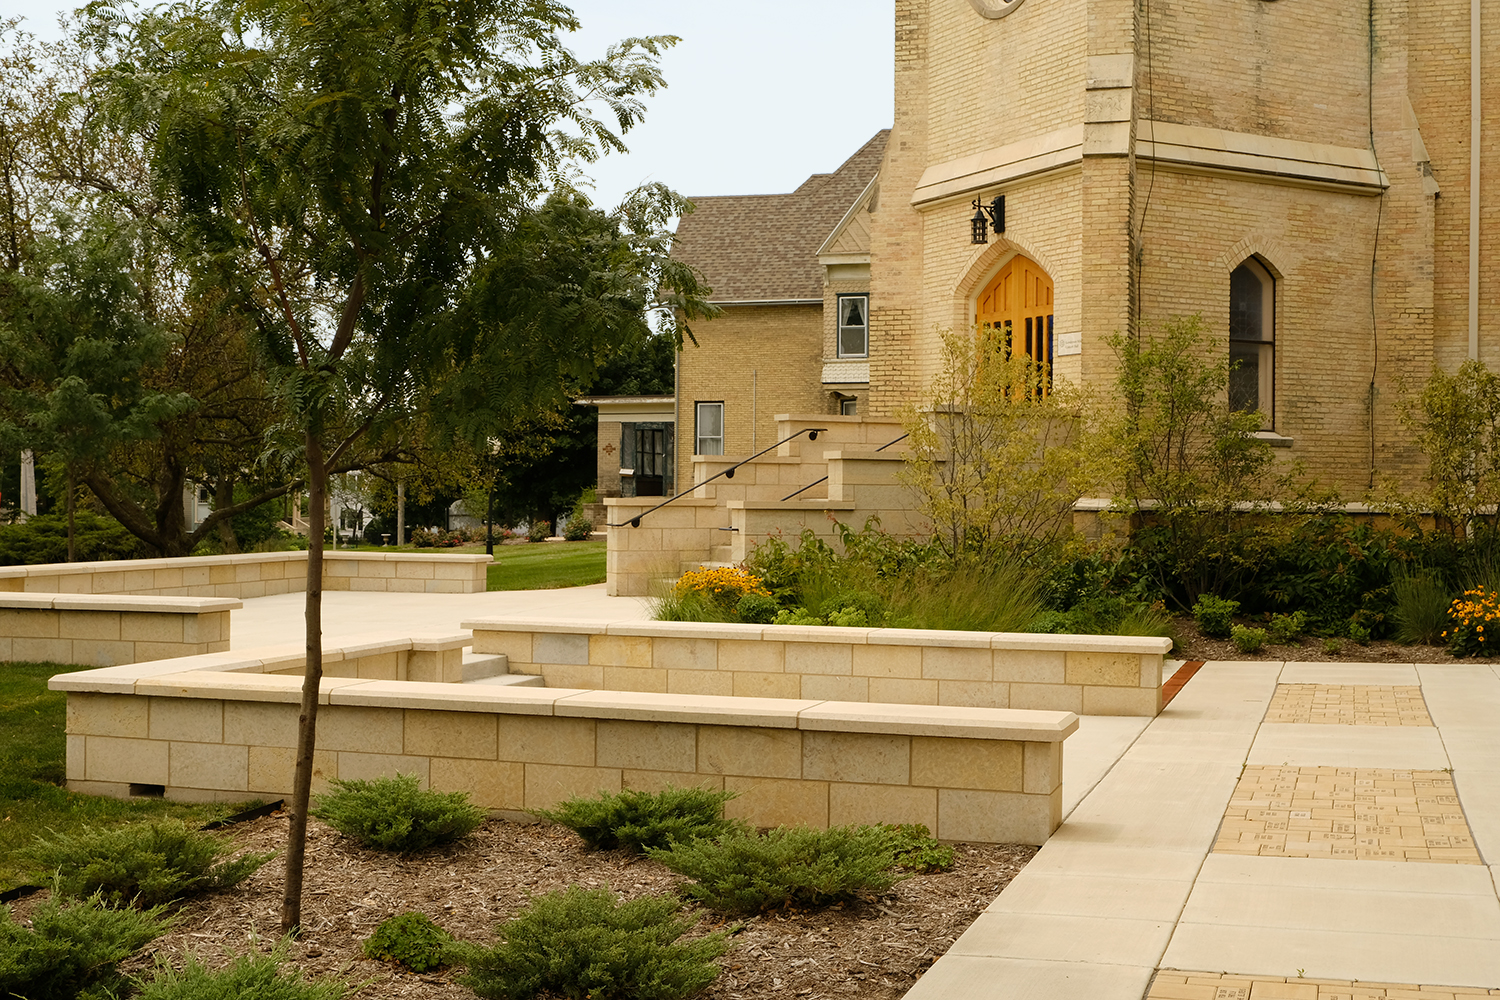 Monroe (WI) Arts Center landscape August 2018, one-year after installation